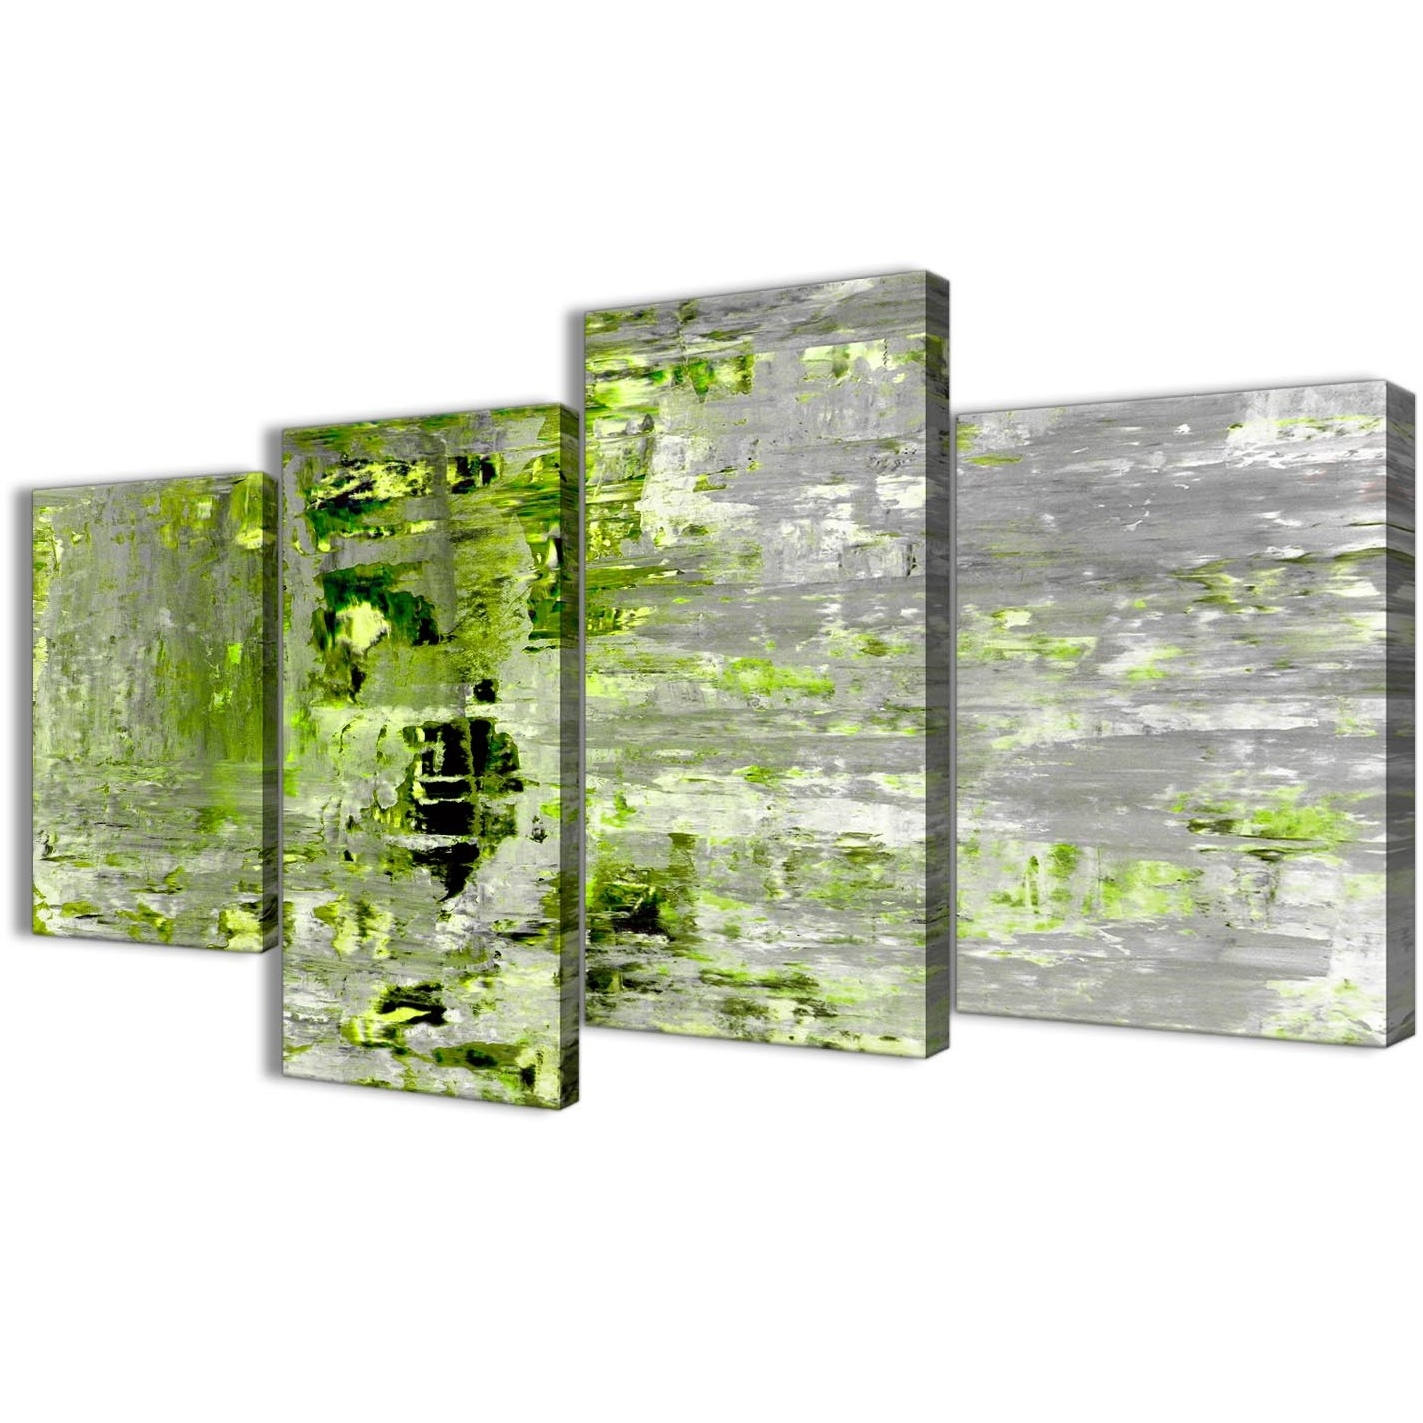 Large Lime Green Grey Abstract Painting Wall Art Print Canvas Within Most Recent Lime Green Abstract Wall Art (View 10 of 15)